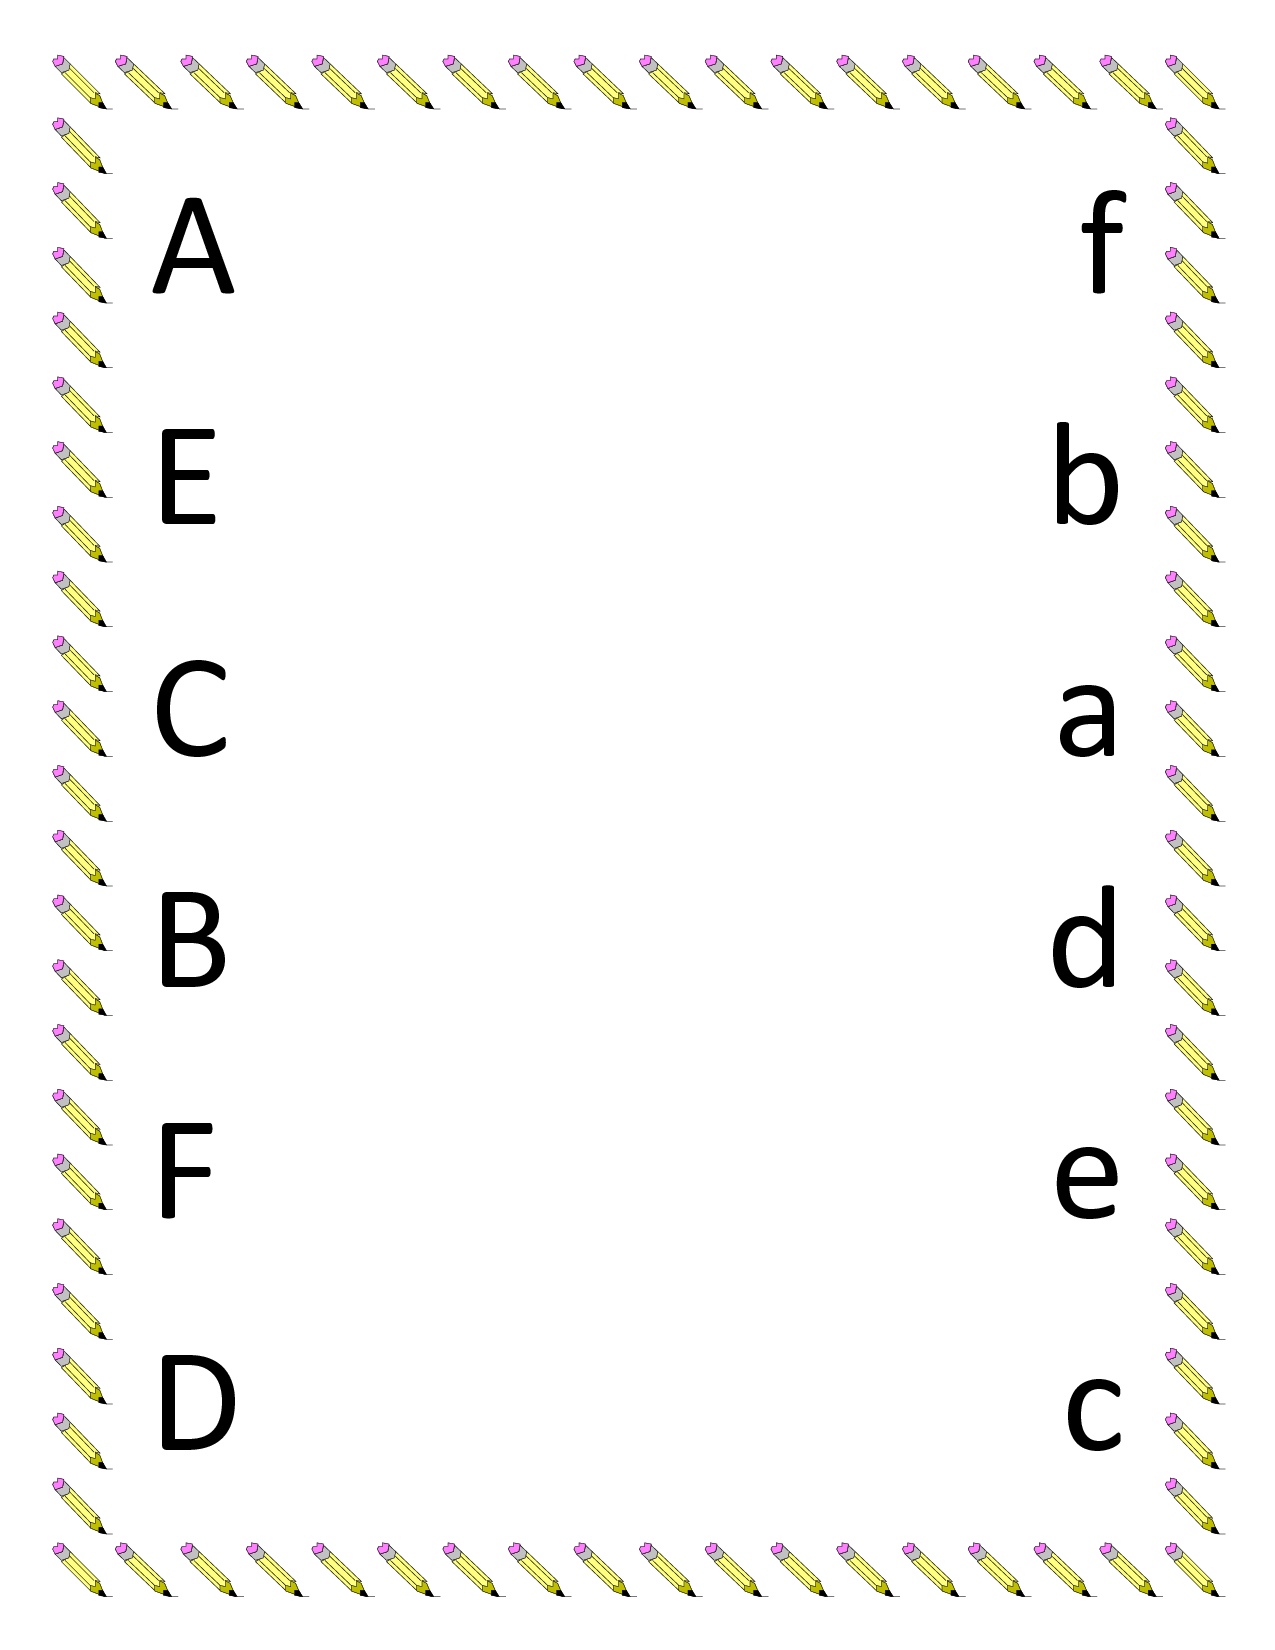 Alphabet Worksheets for Preschoolers – Worksheets for Kindergarten Letters